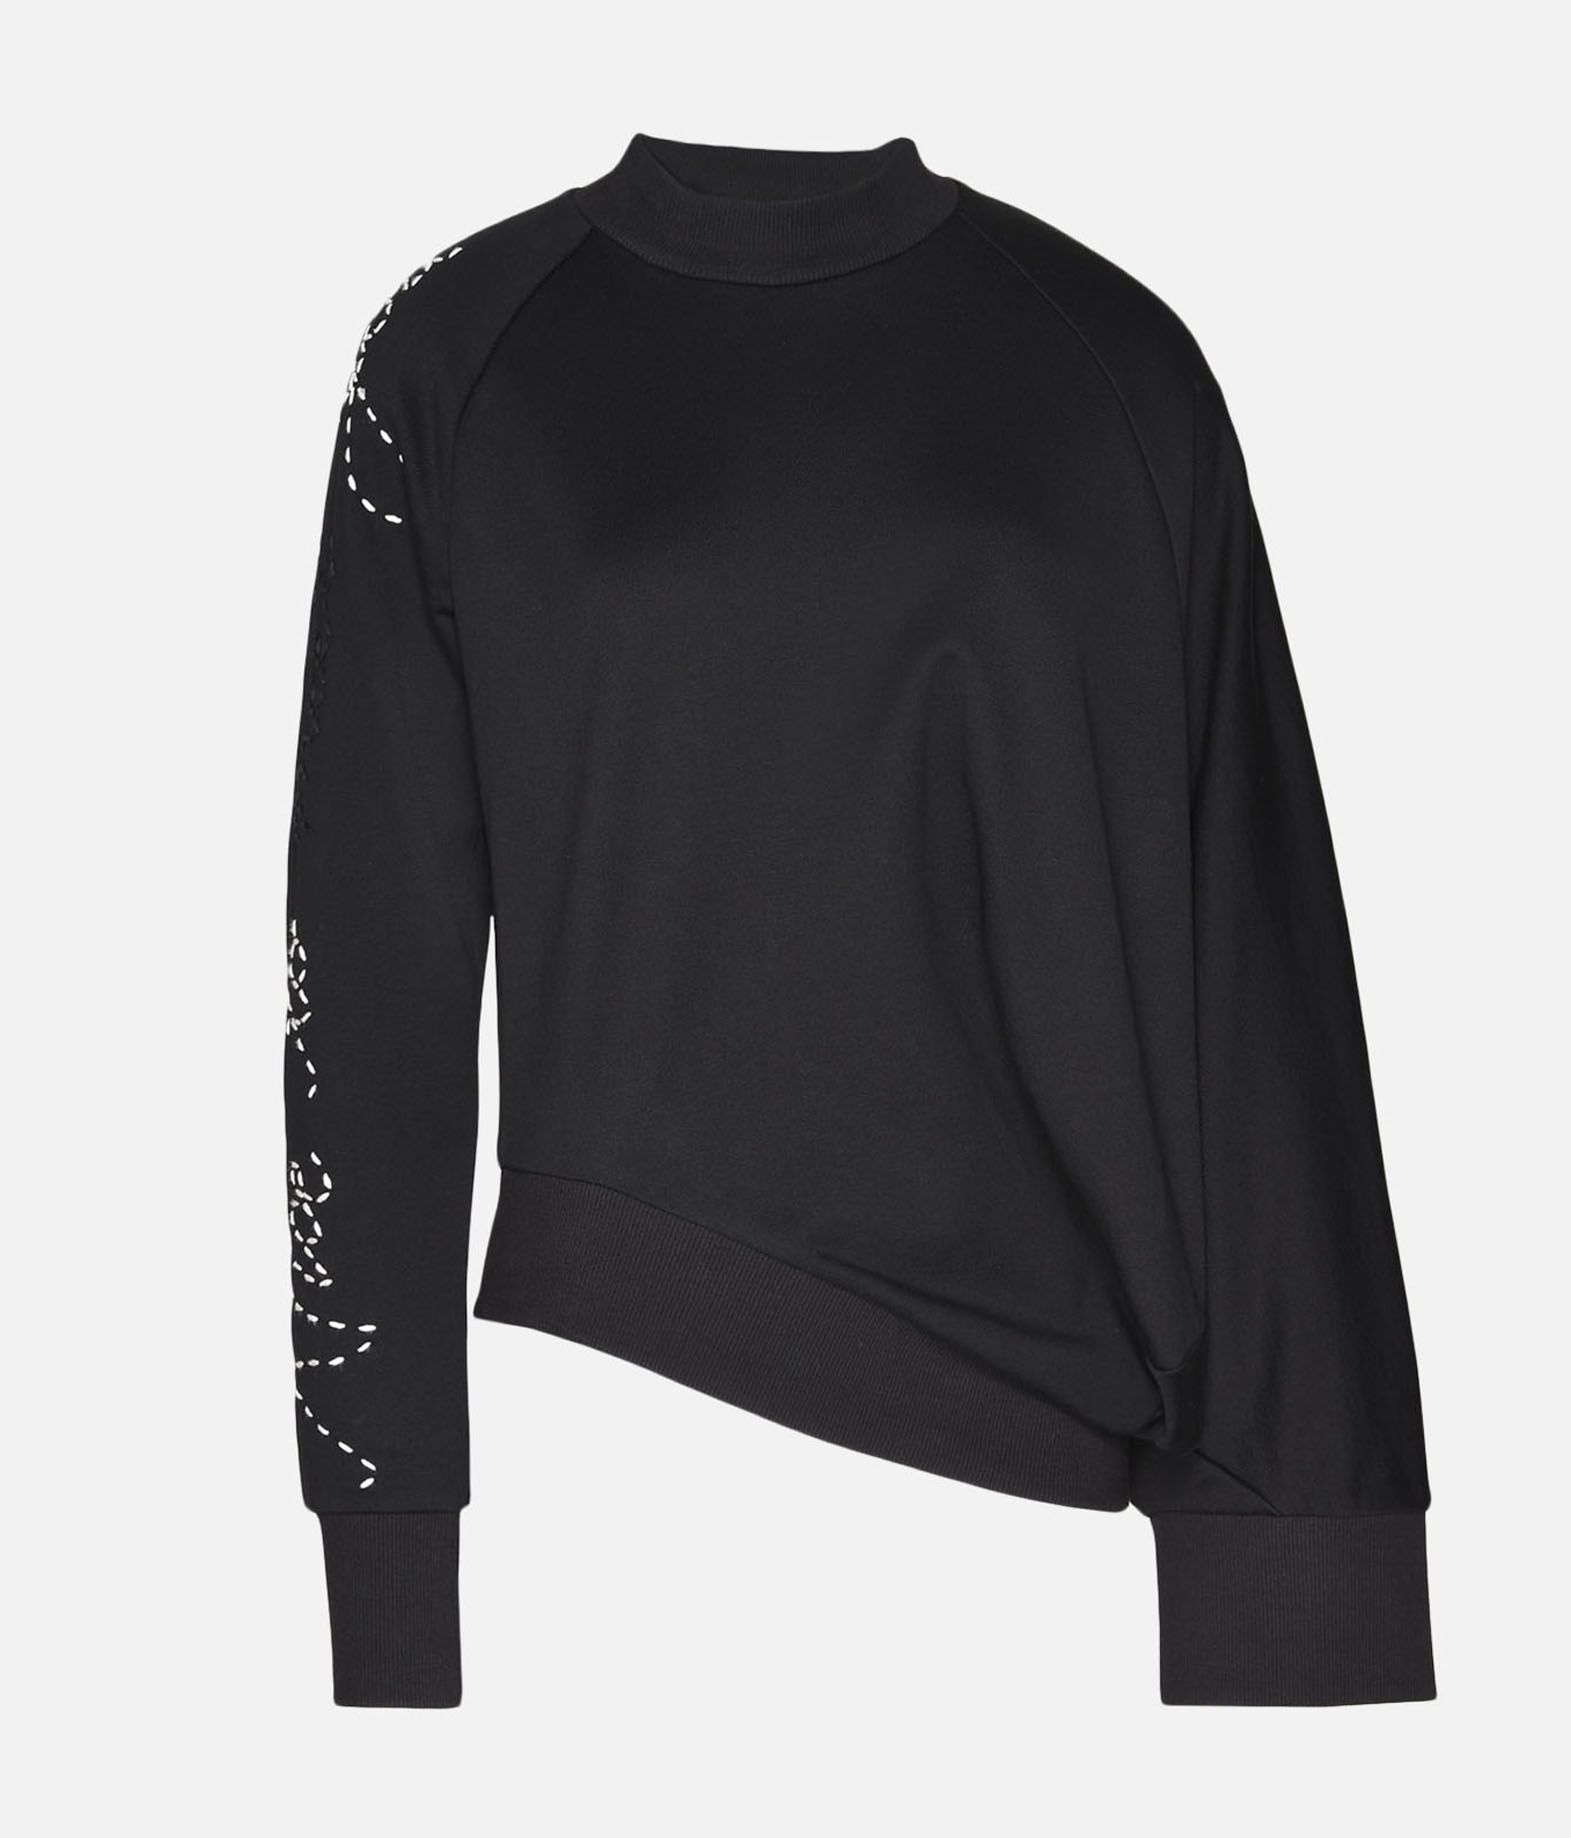 Y-3 Y-3 Sashiko Slogan Sweater Sweatshirt Woman f